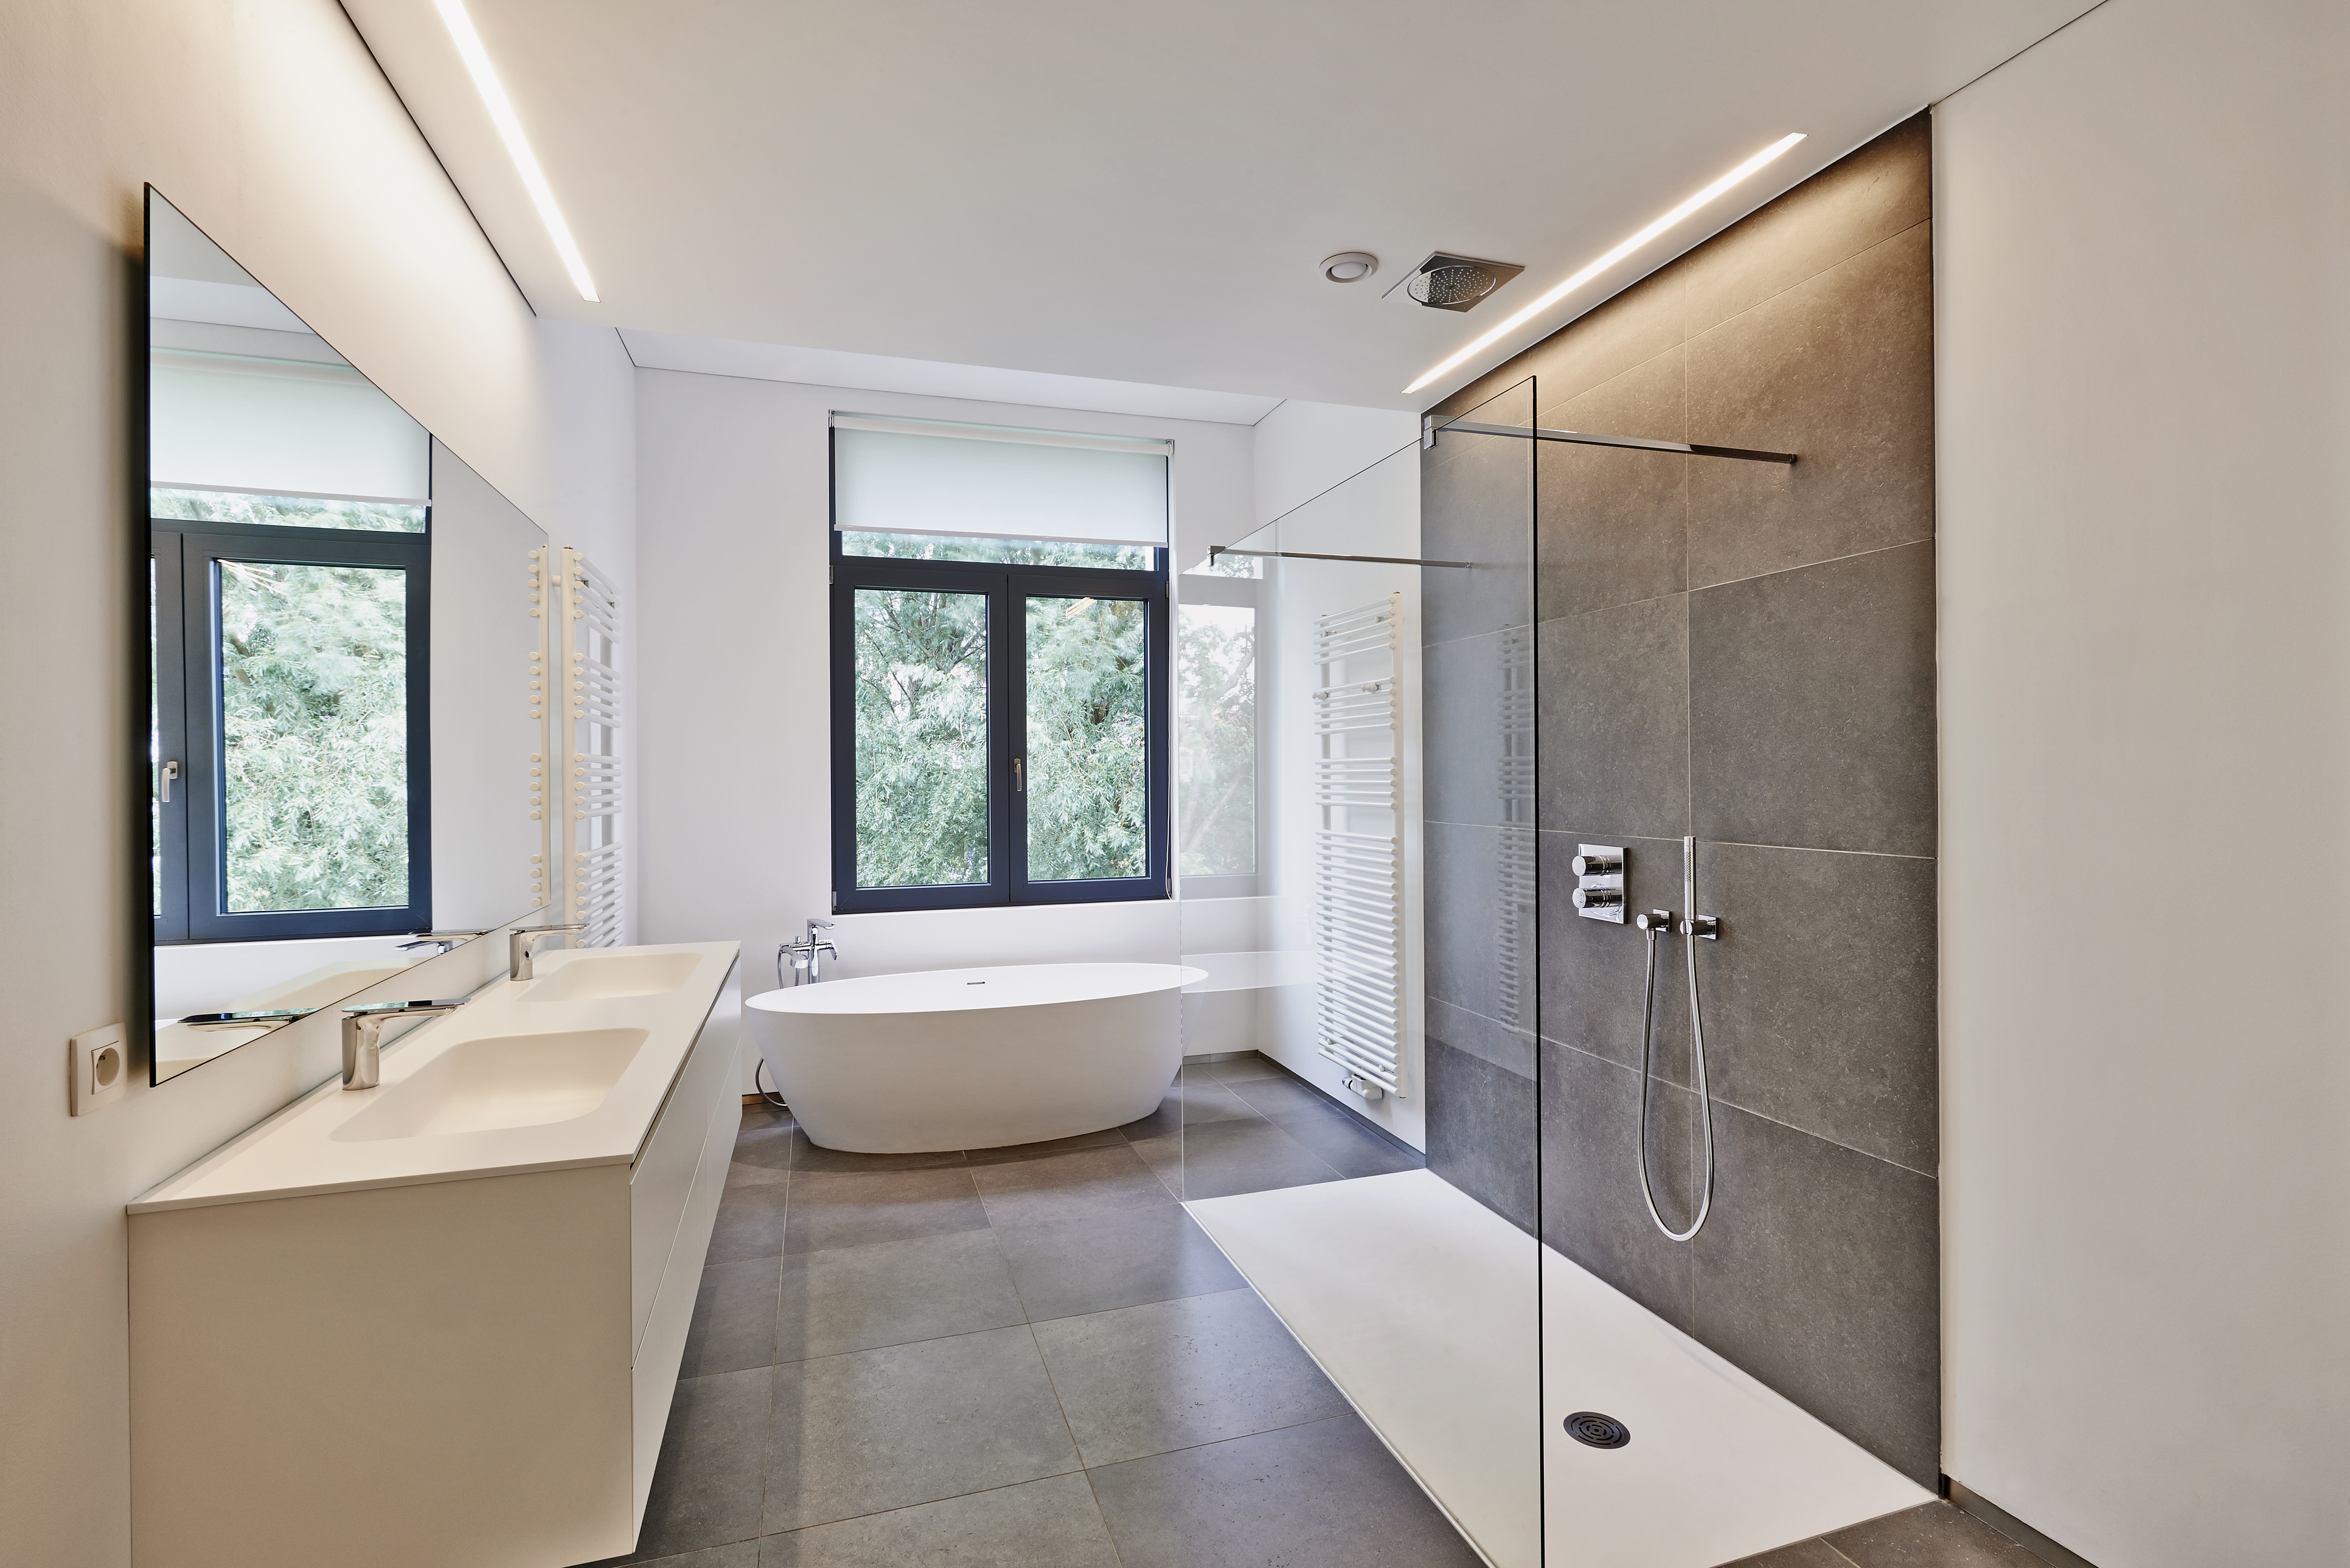 Ideas for Creating a Stylish Accessible Bathroom